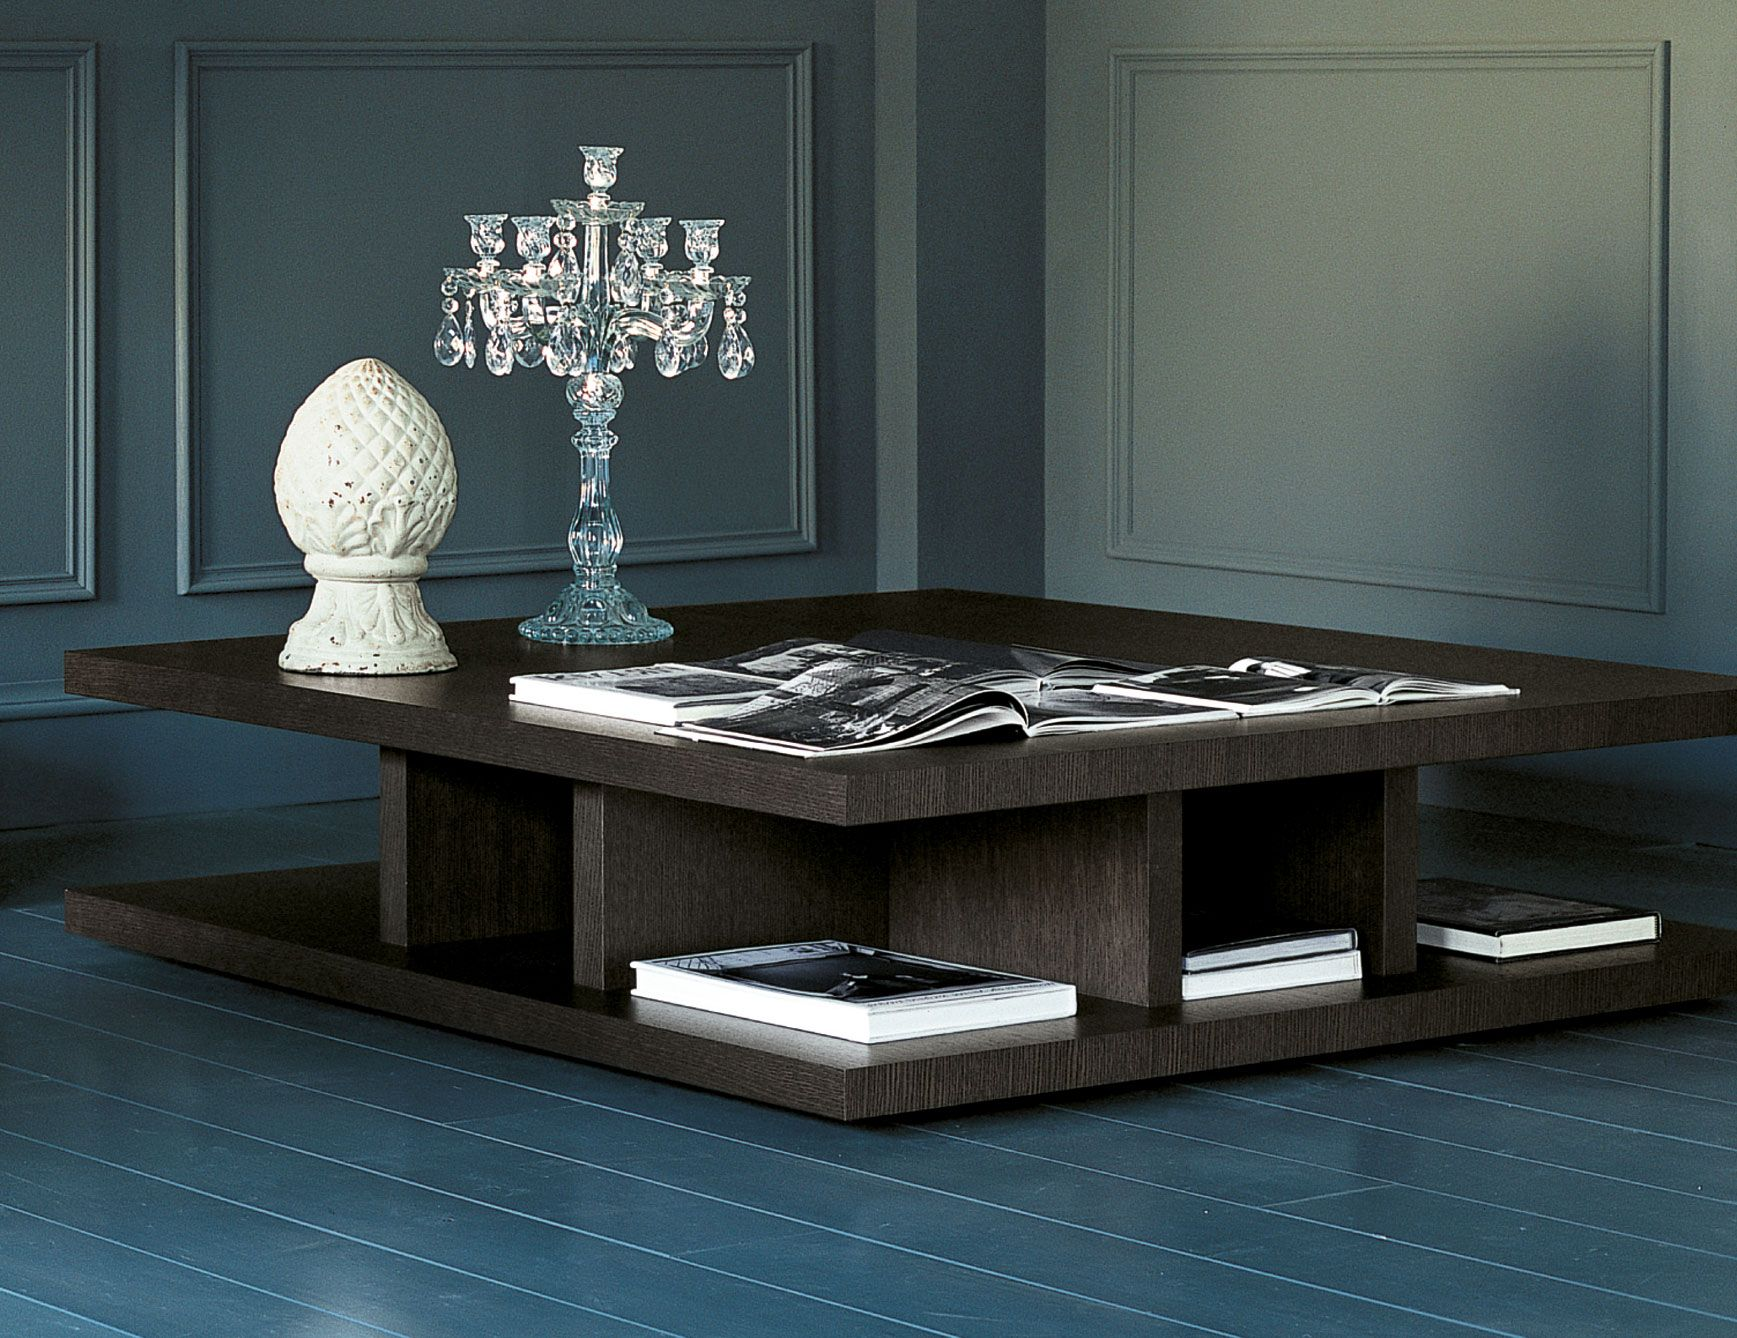 Brera luxury Italian coffee table shown in ebony wood This luxury